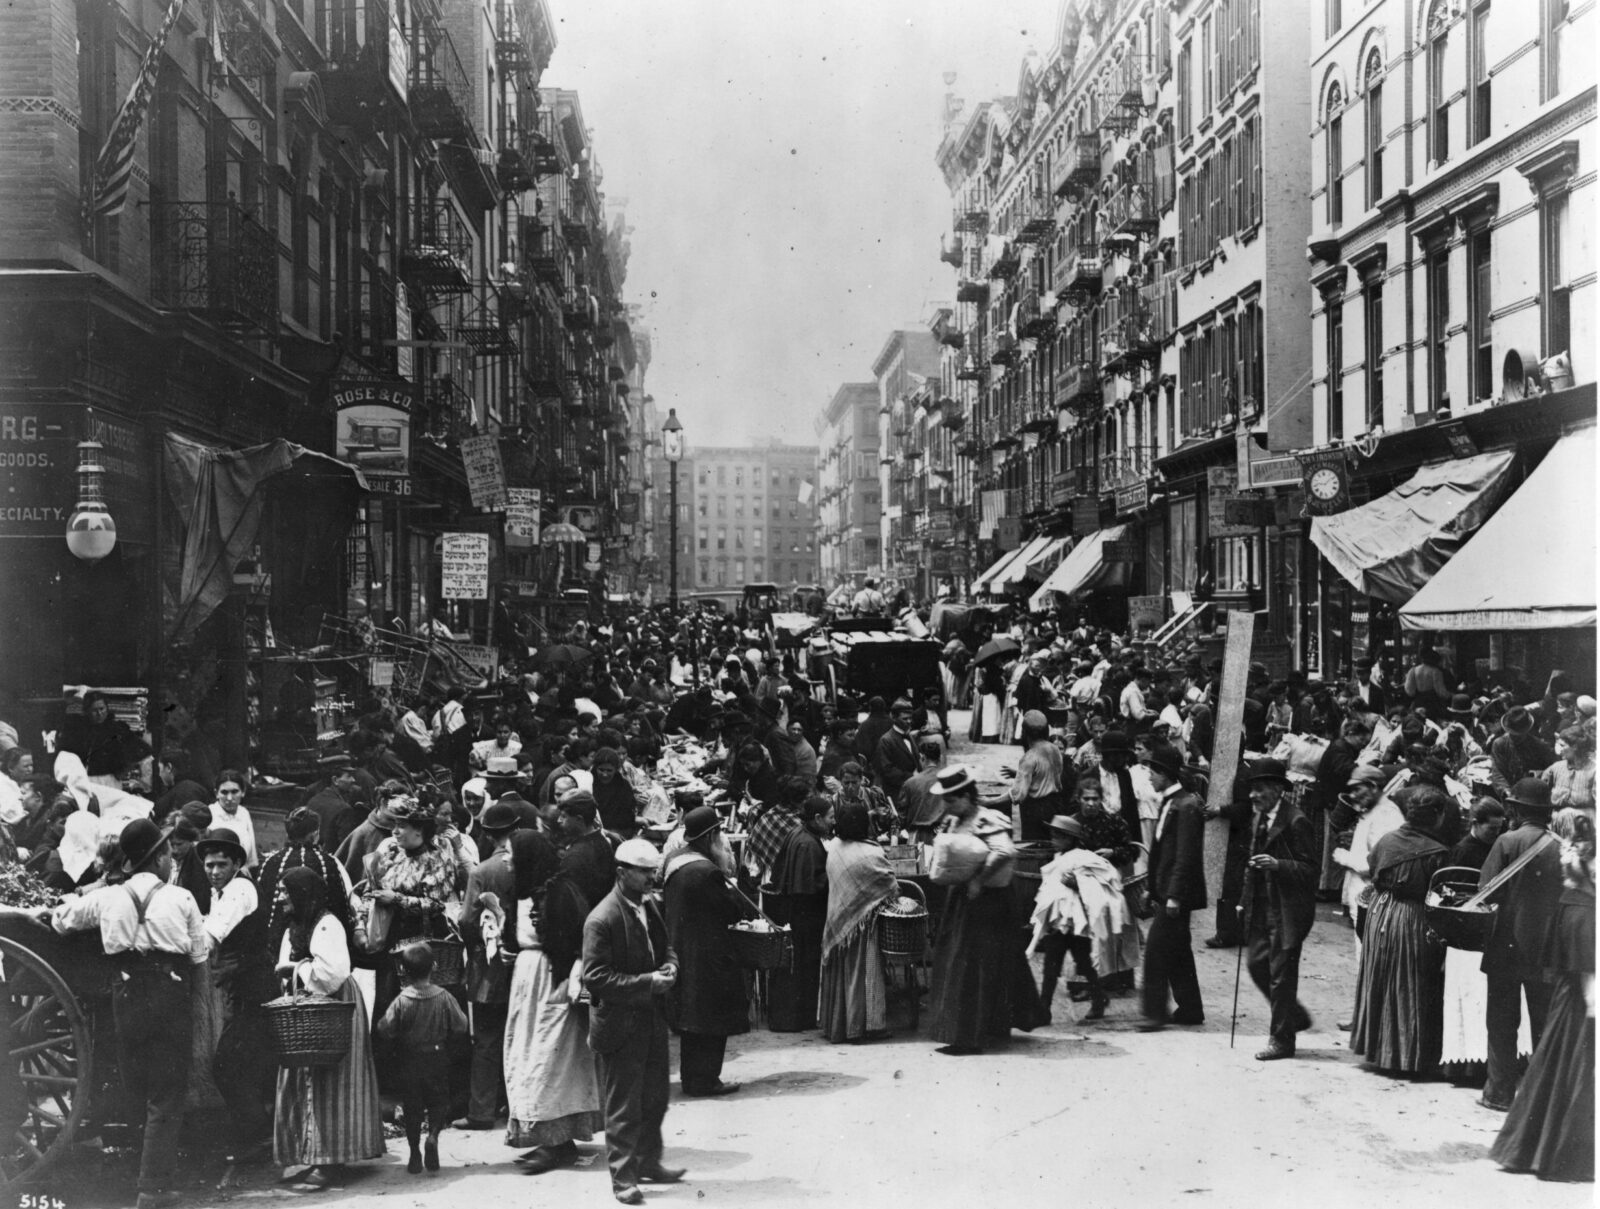 1898 photo of Orchard Street full of people crowding in the road between rows of apartment buildings and businesses